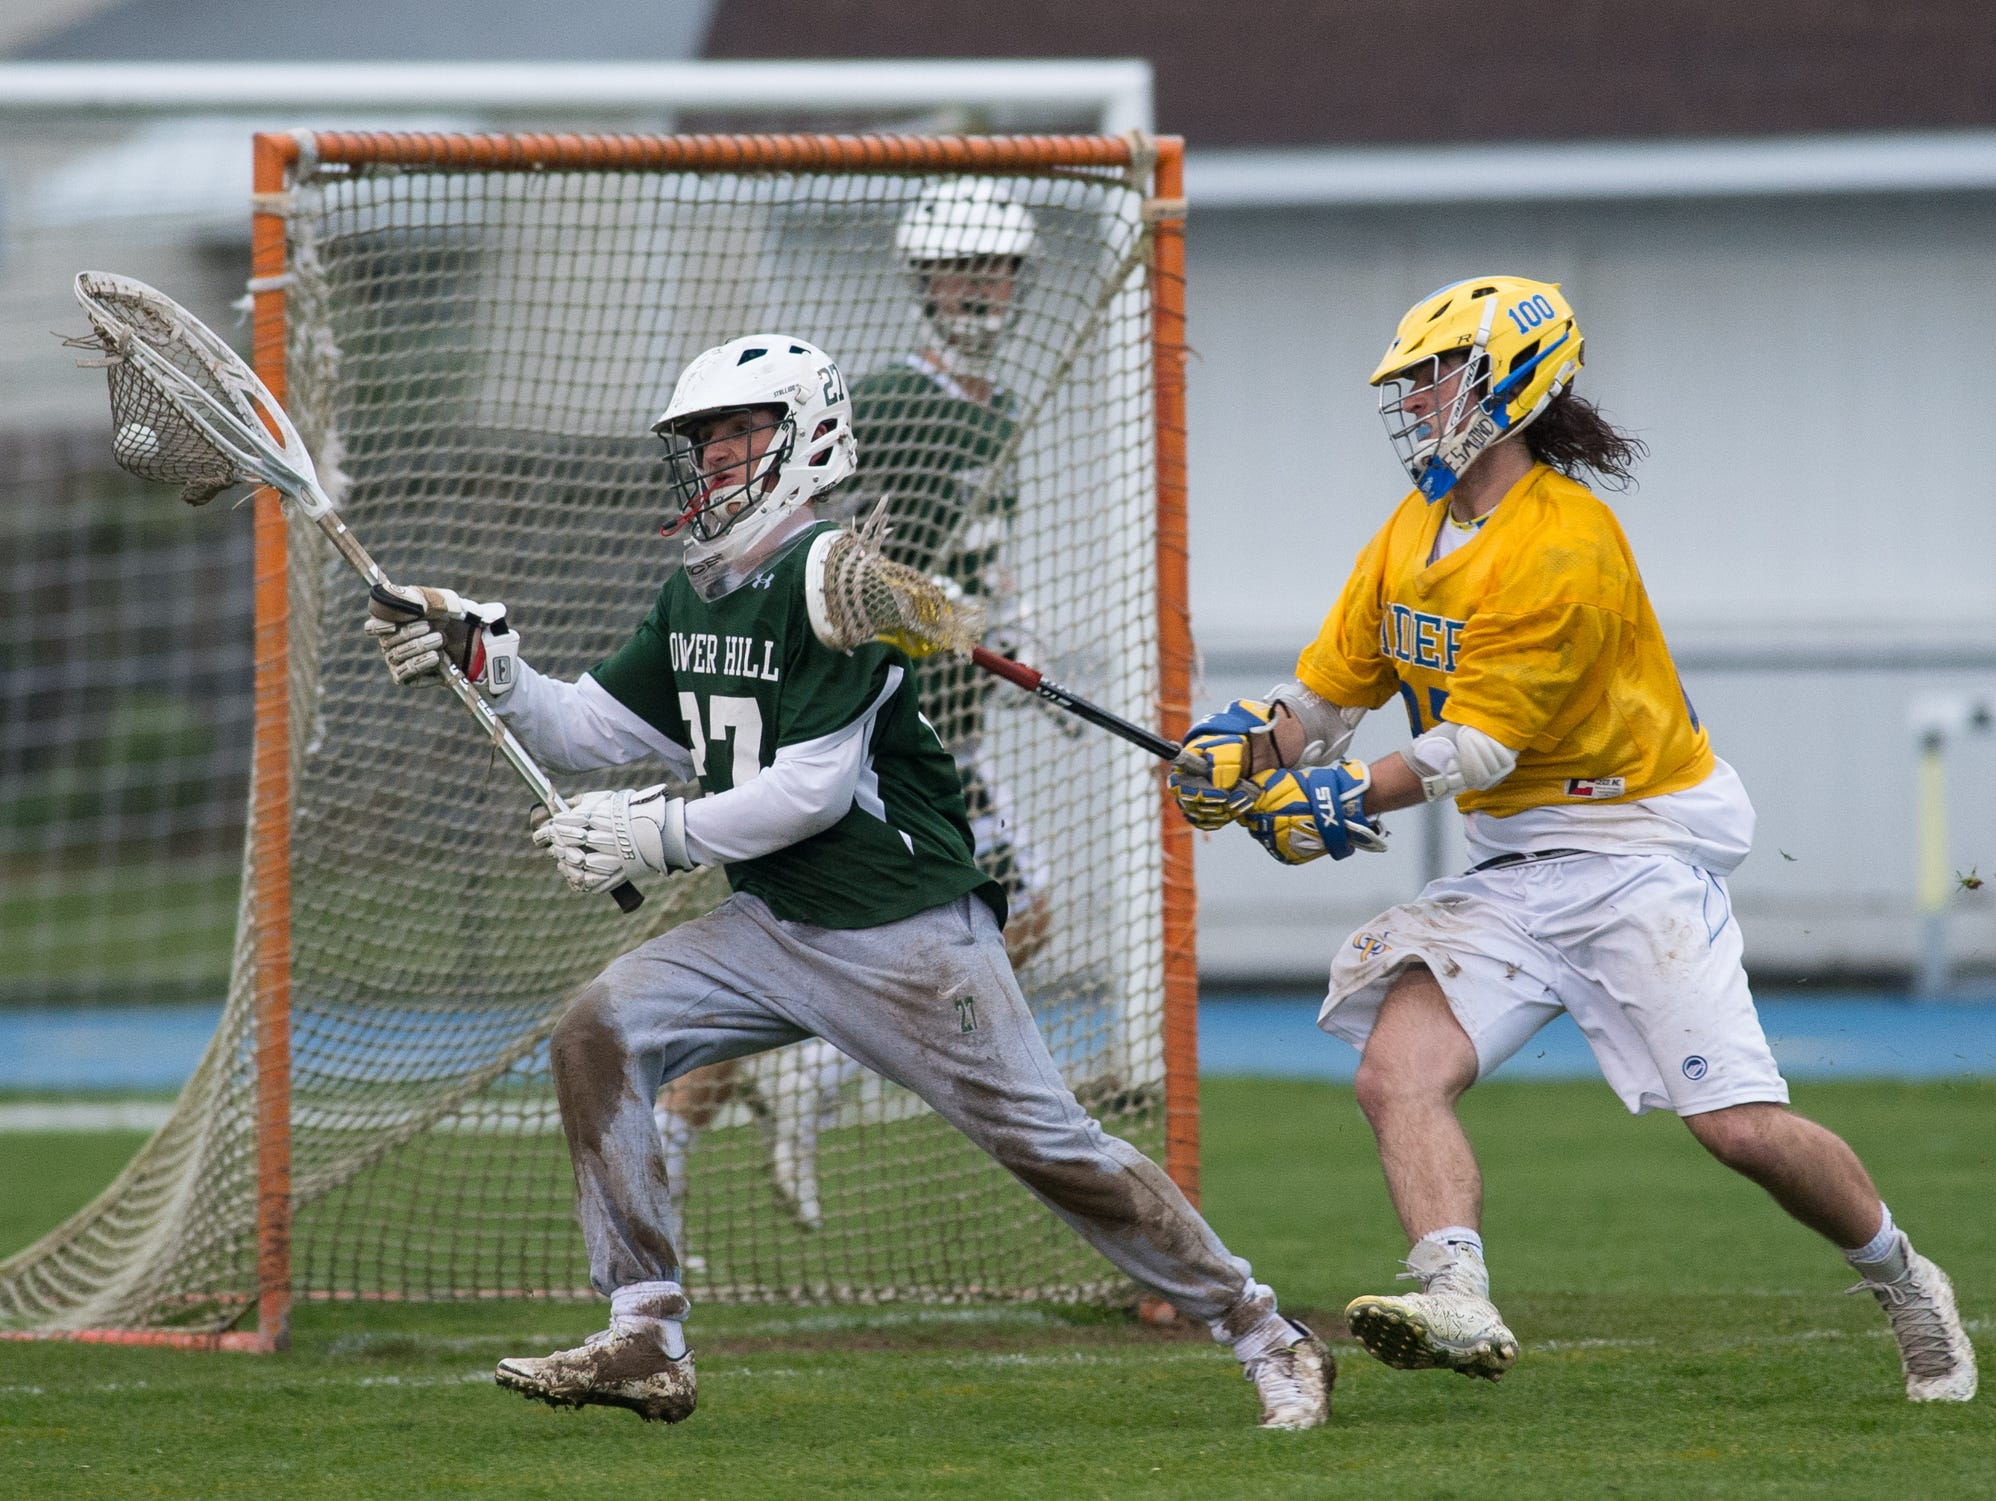 Tower Hill's goalie Michael Gianforcaro (27) keeps the ball away from Caesar Rodney's offense in their 11-9 win.